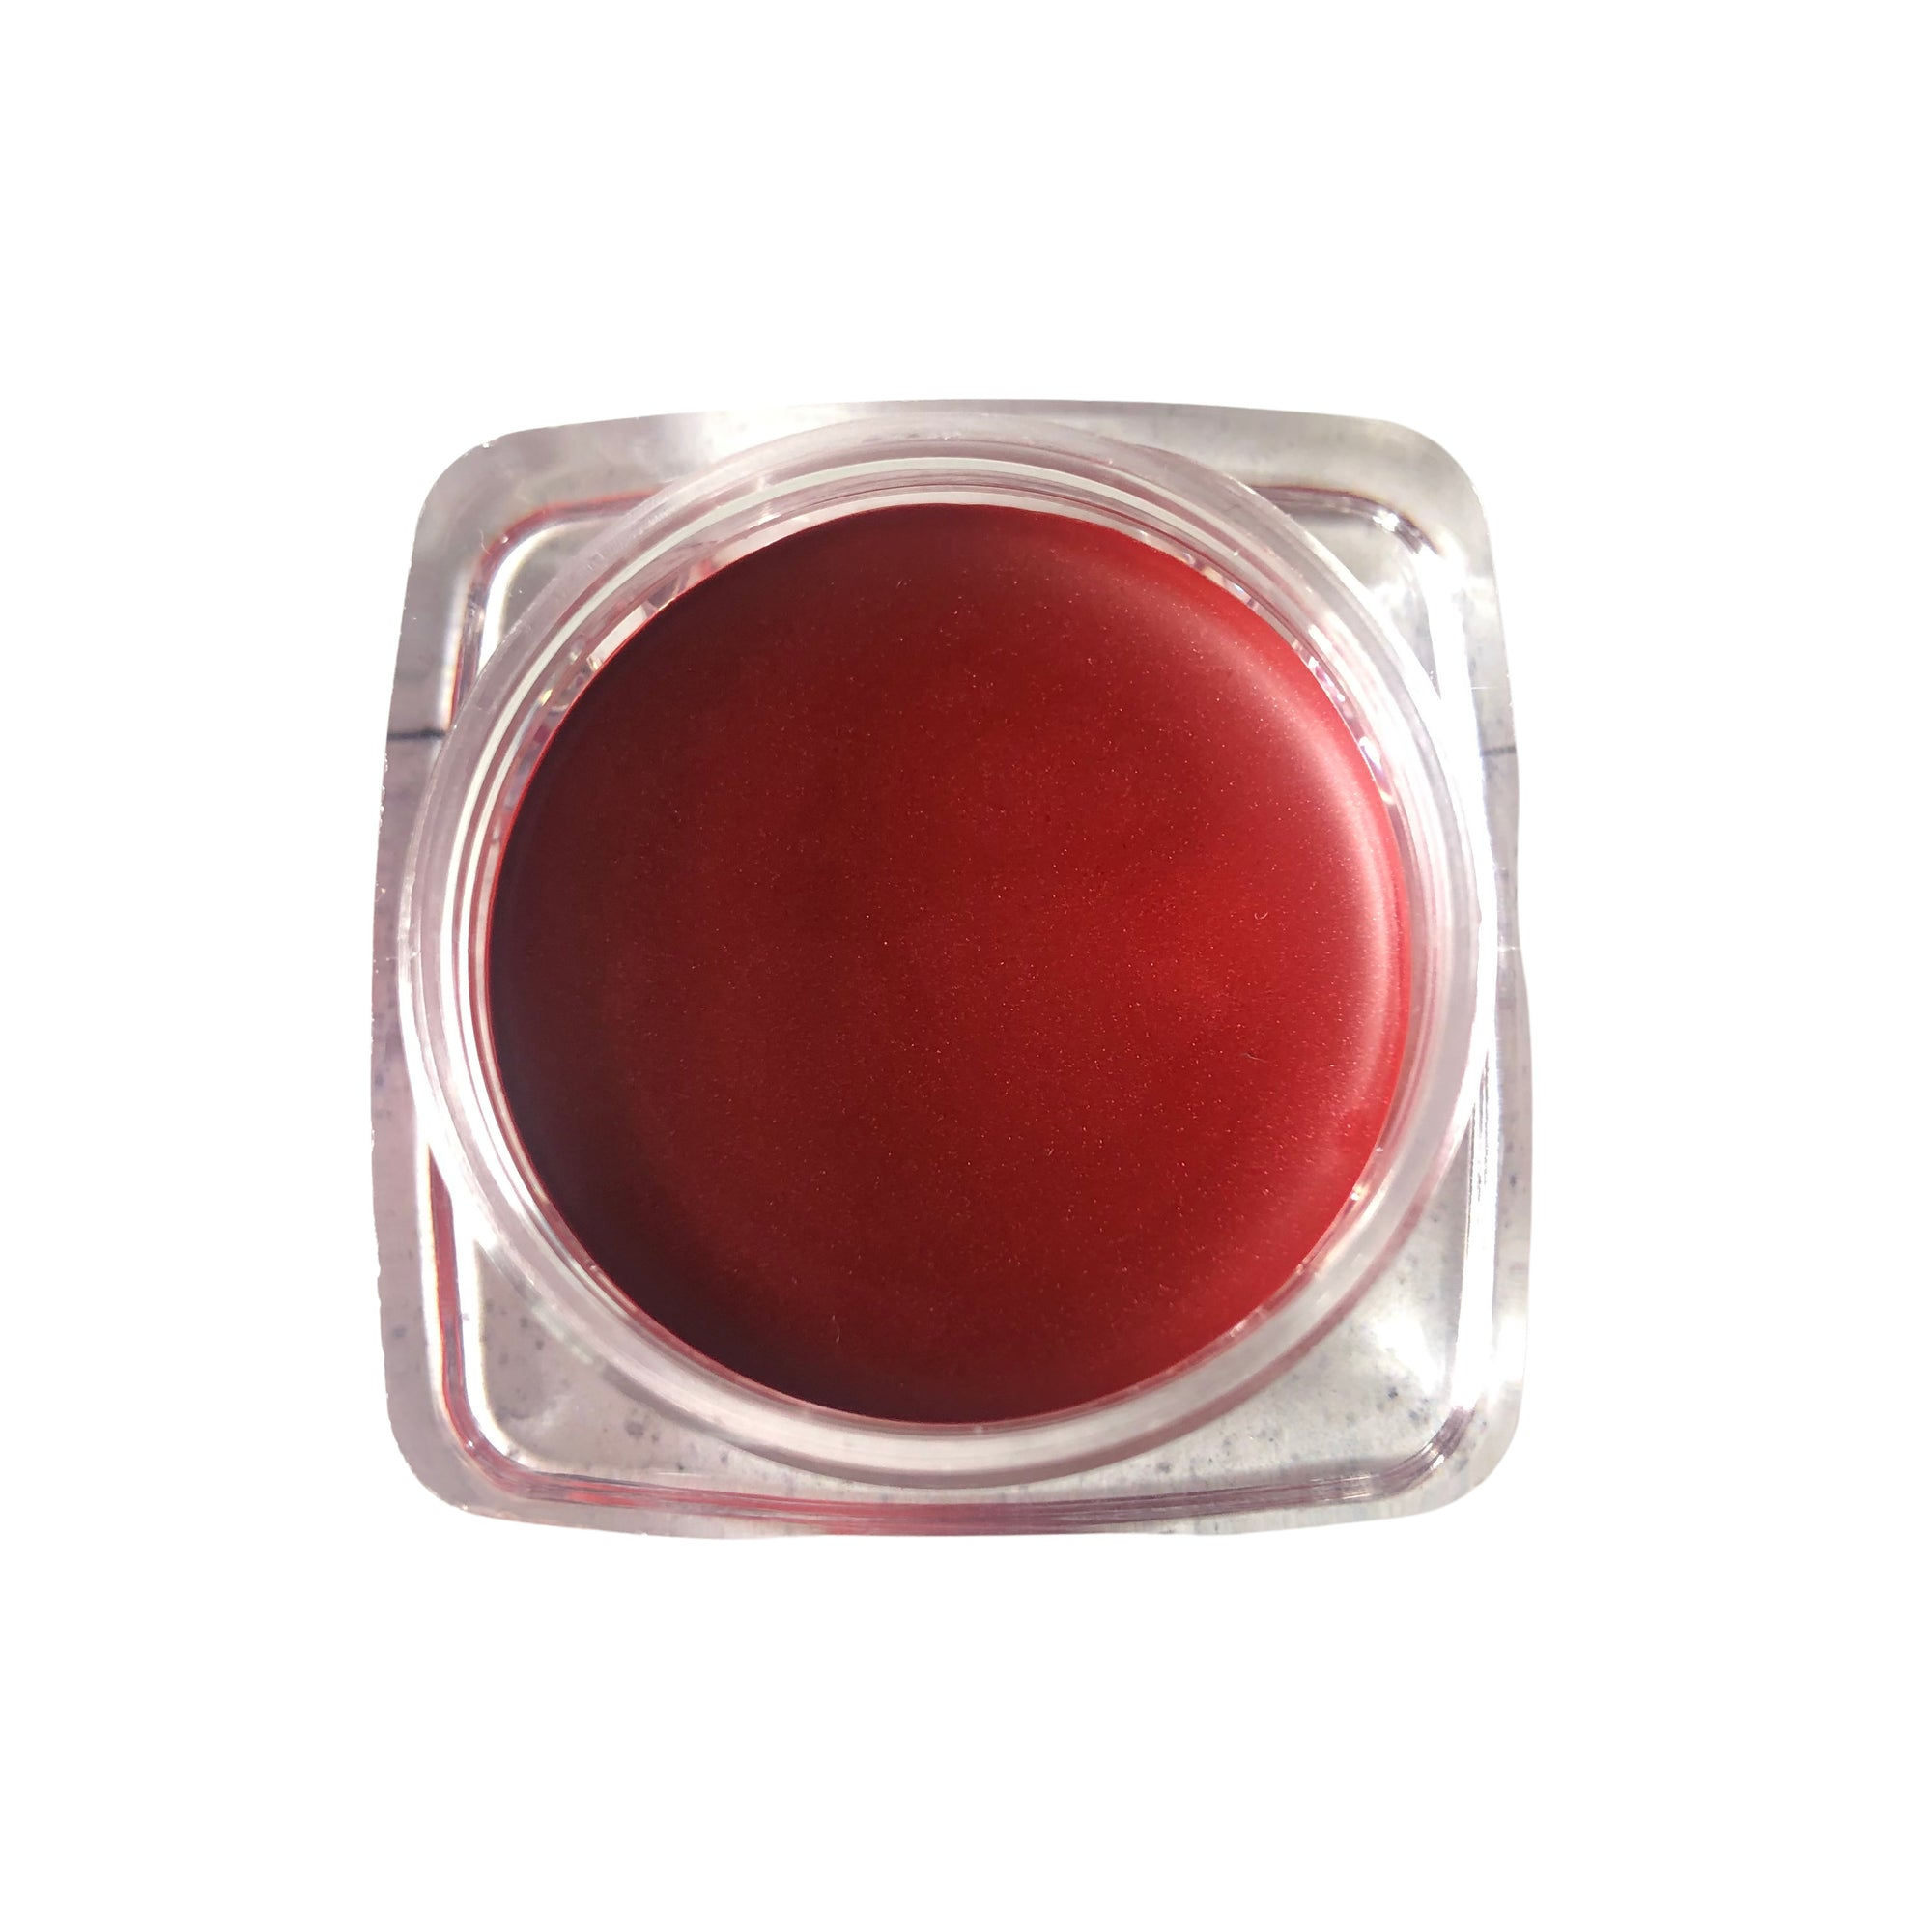 open pot of scarlet balm red lipstick